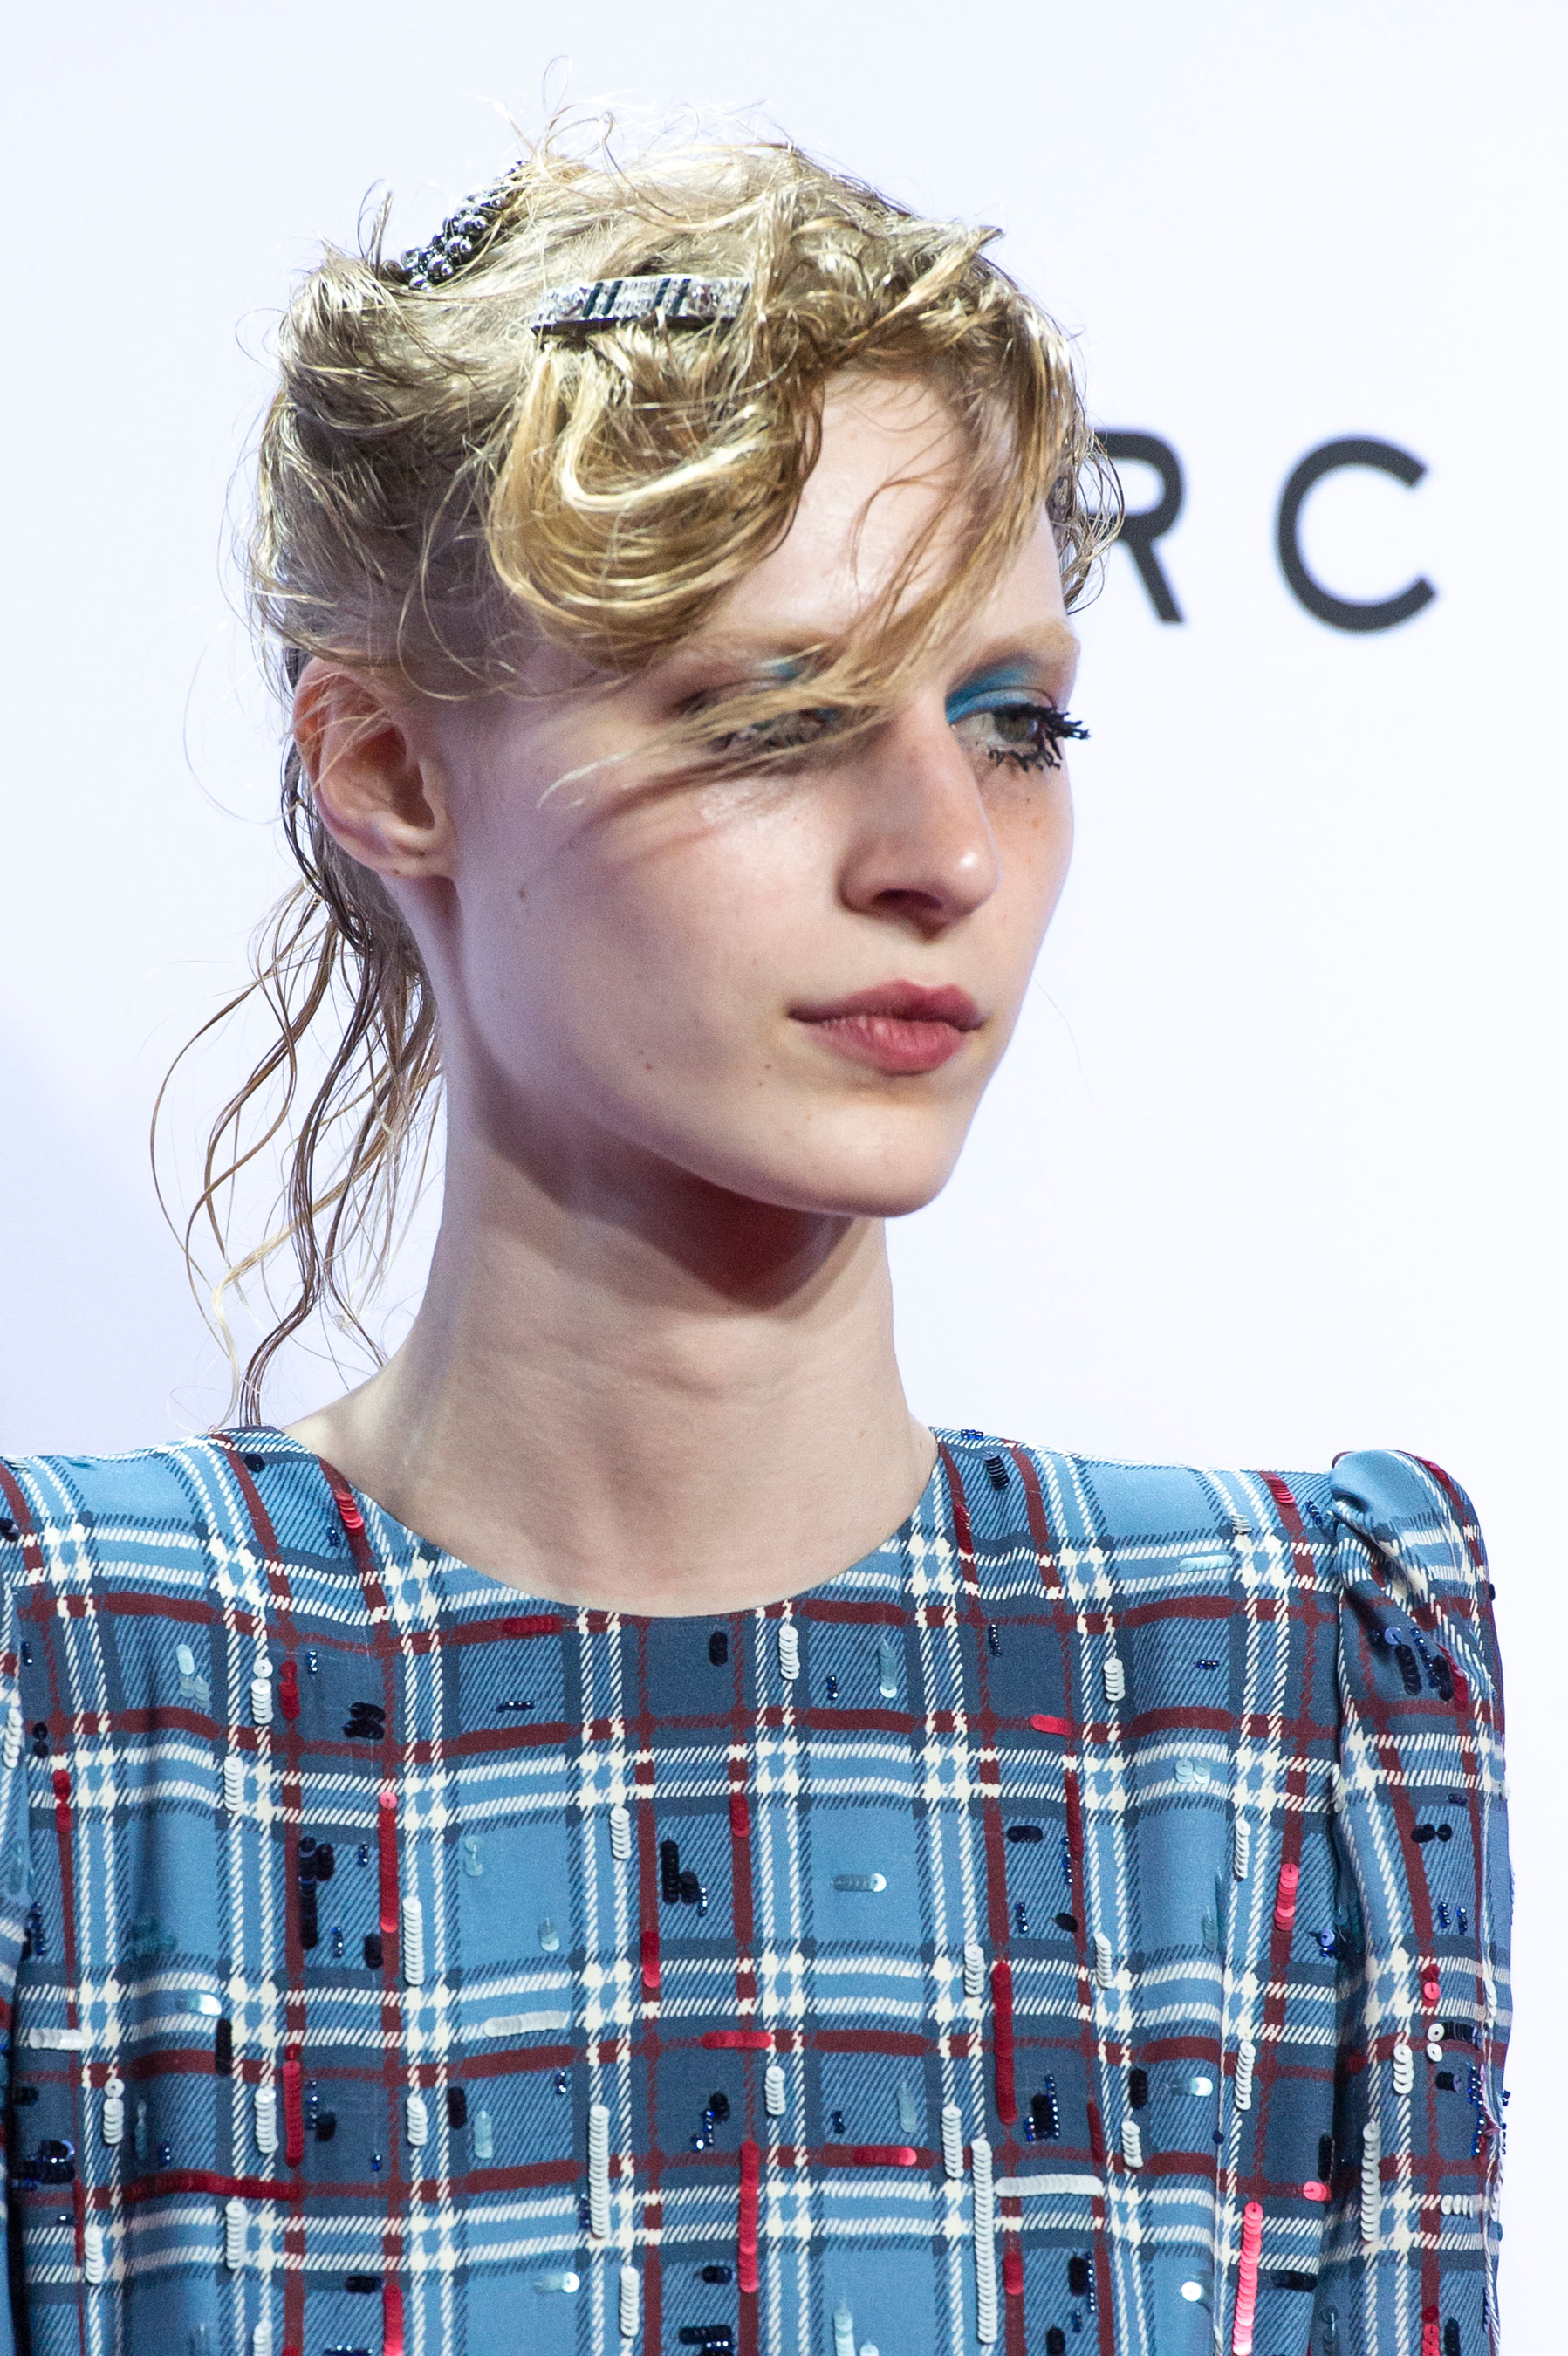 marc-jacobs-spring-2016-runway-beauty-fashion-show-the-impression-01